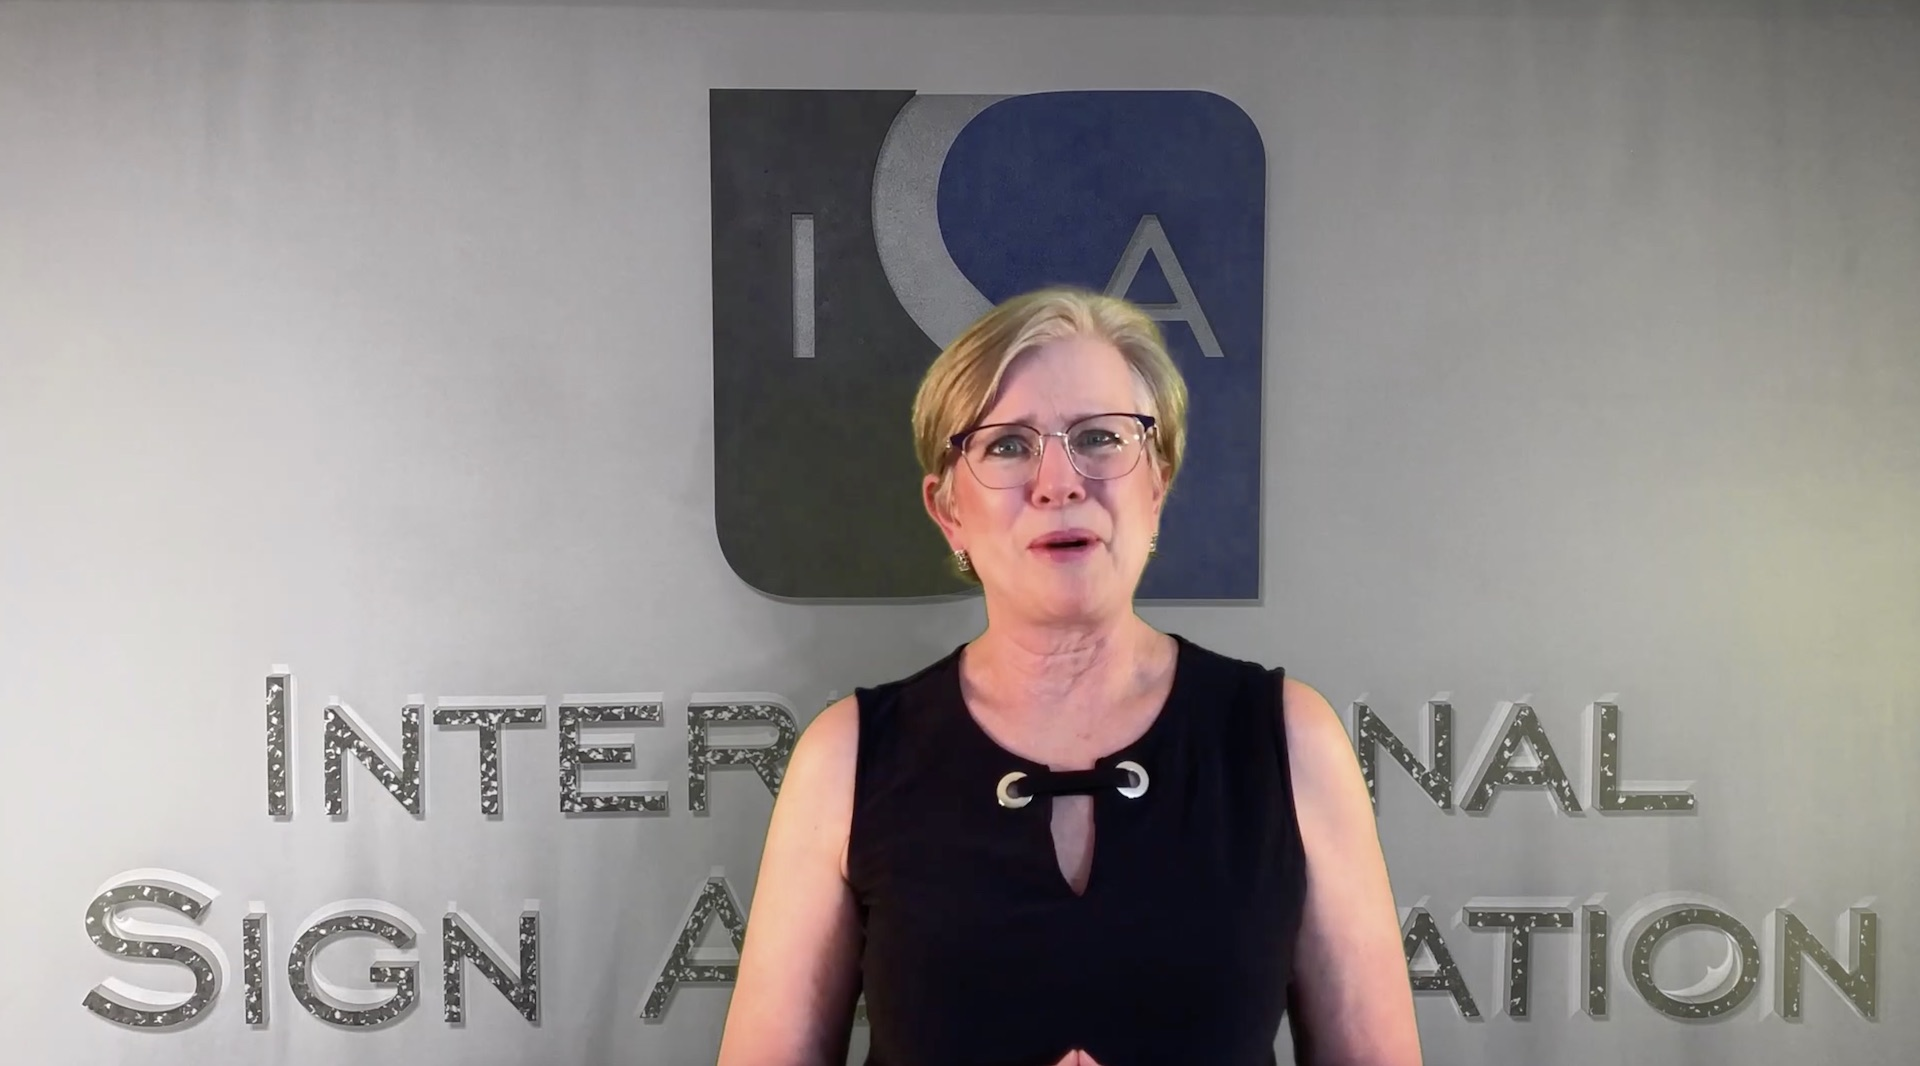 Video preview: Lori Anderson on Cancellation of ISA International Sign Expo 2020